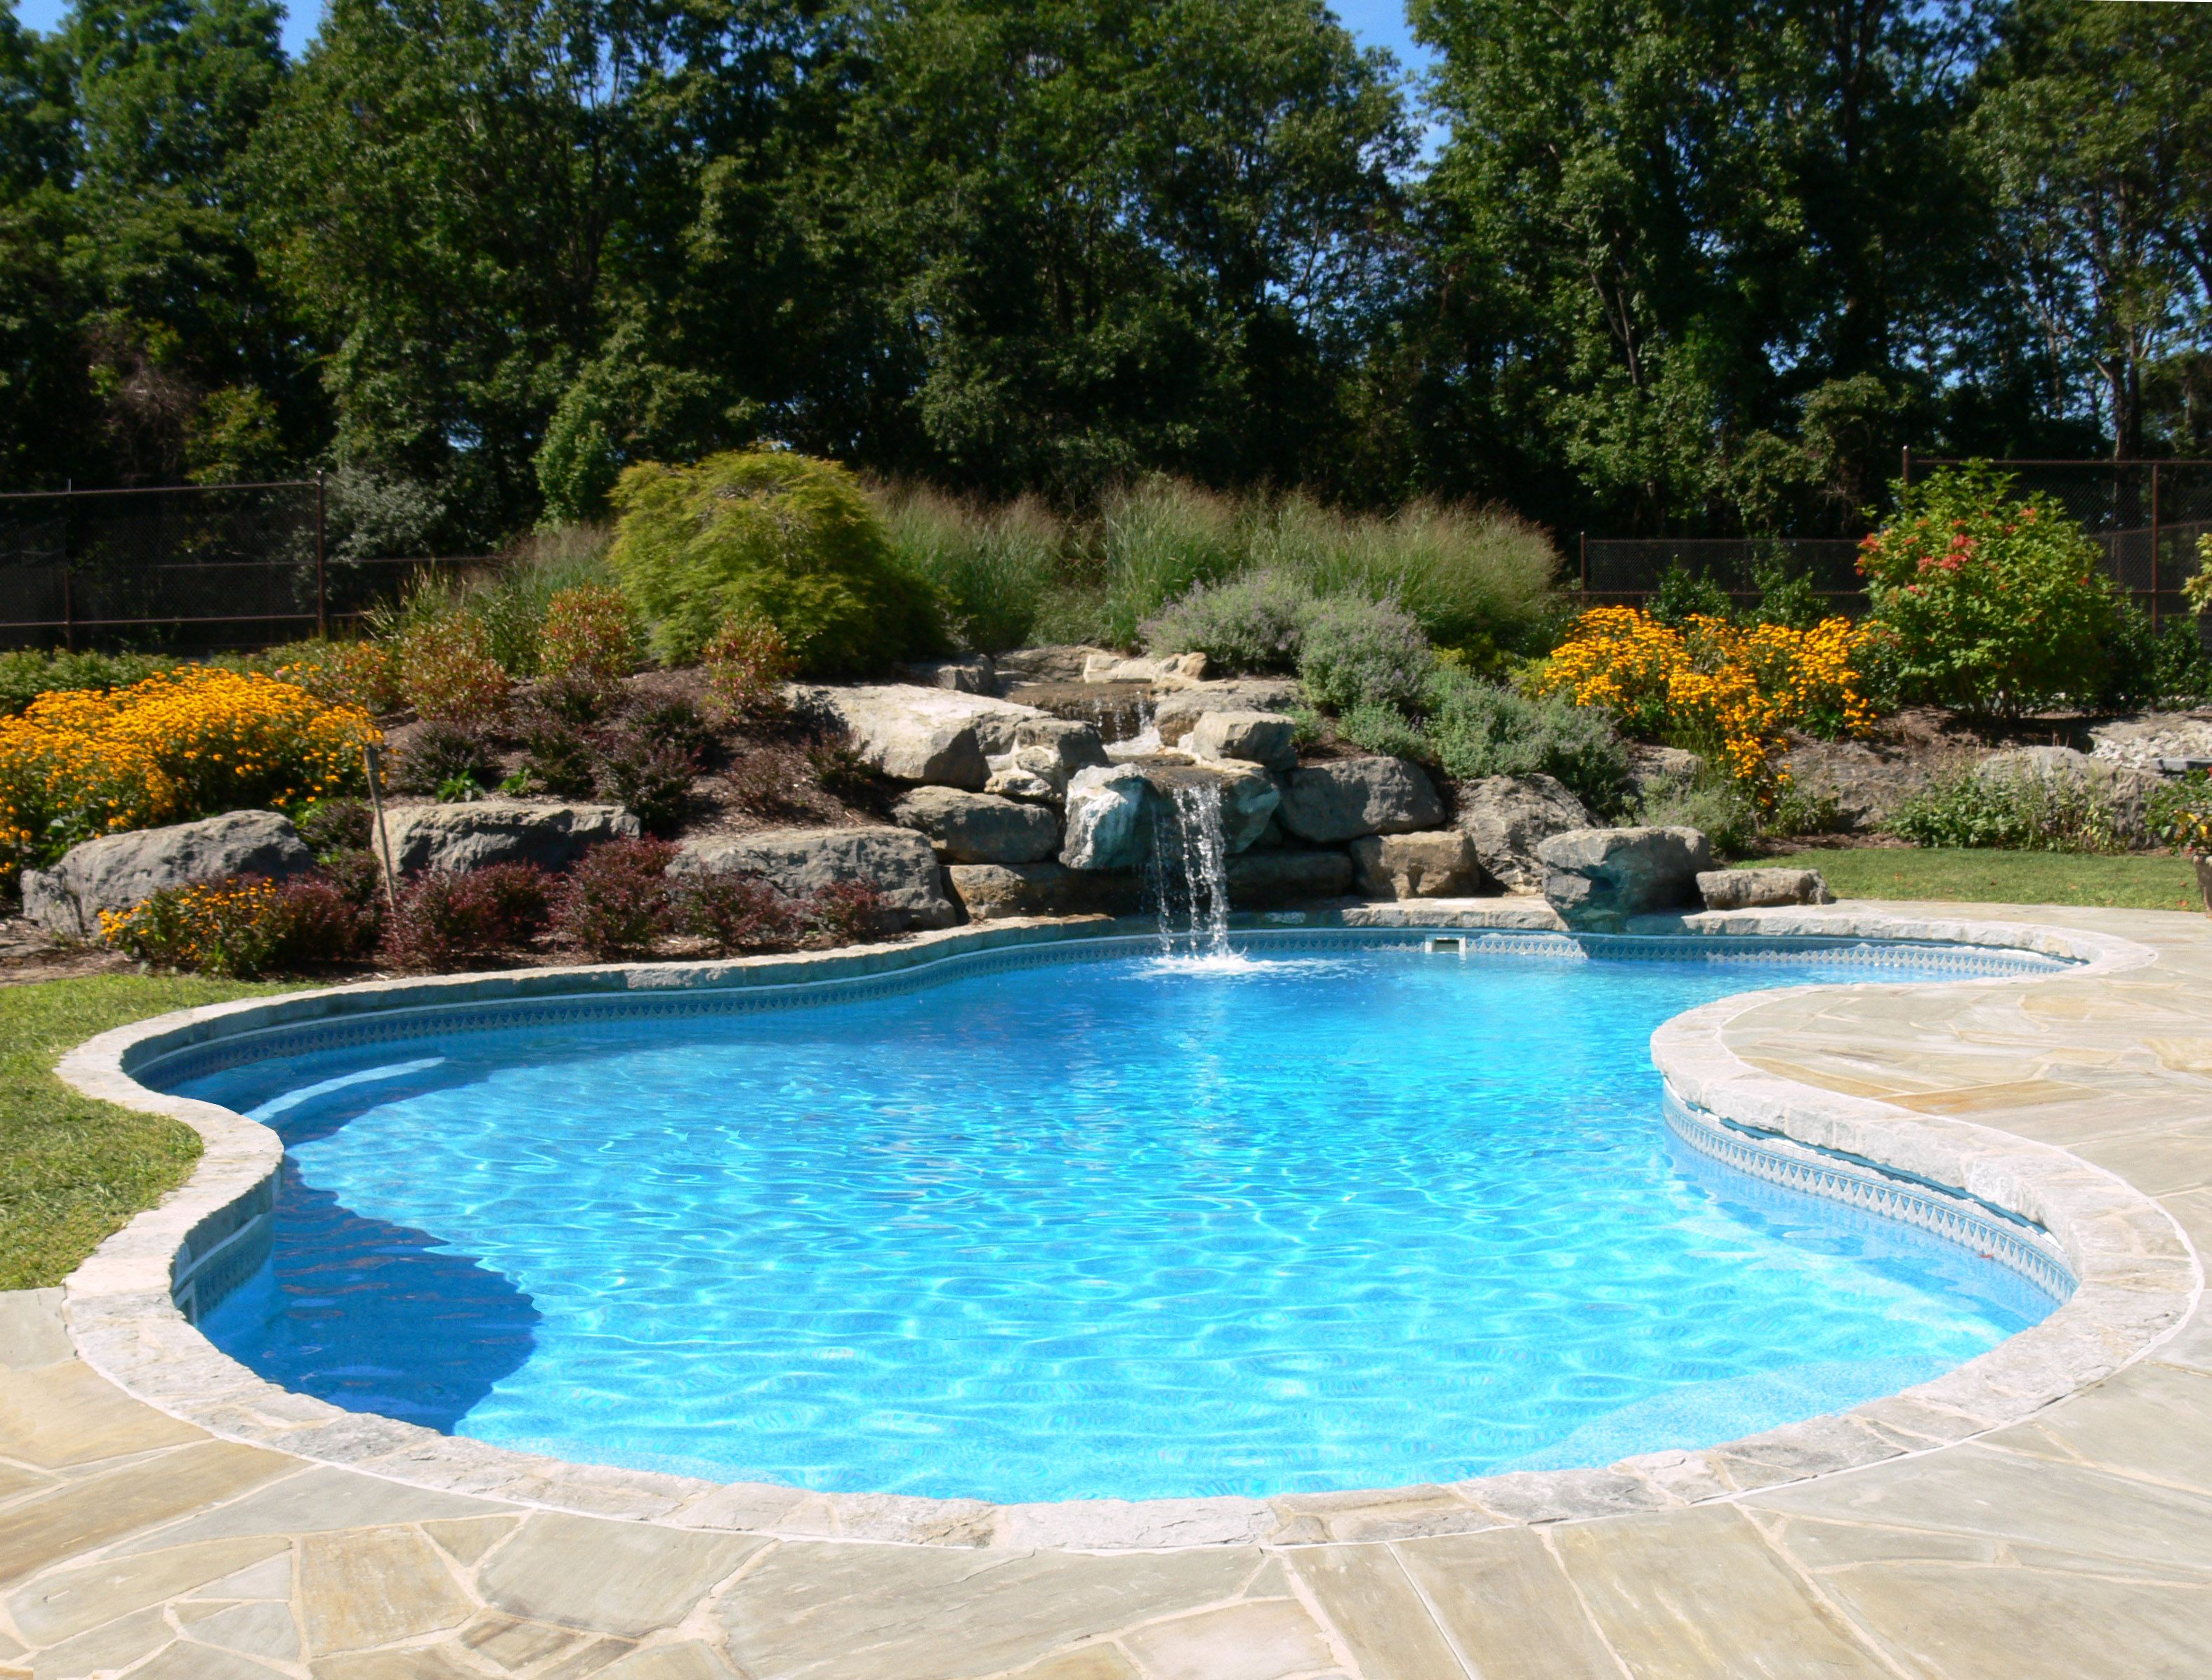 Lagoon Swimming Pool Kits Backyard Pool Landscaping Lagoon Pool